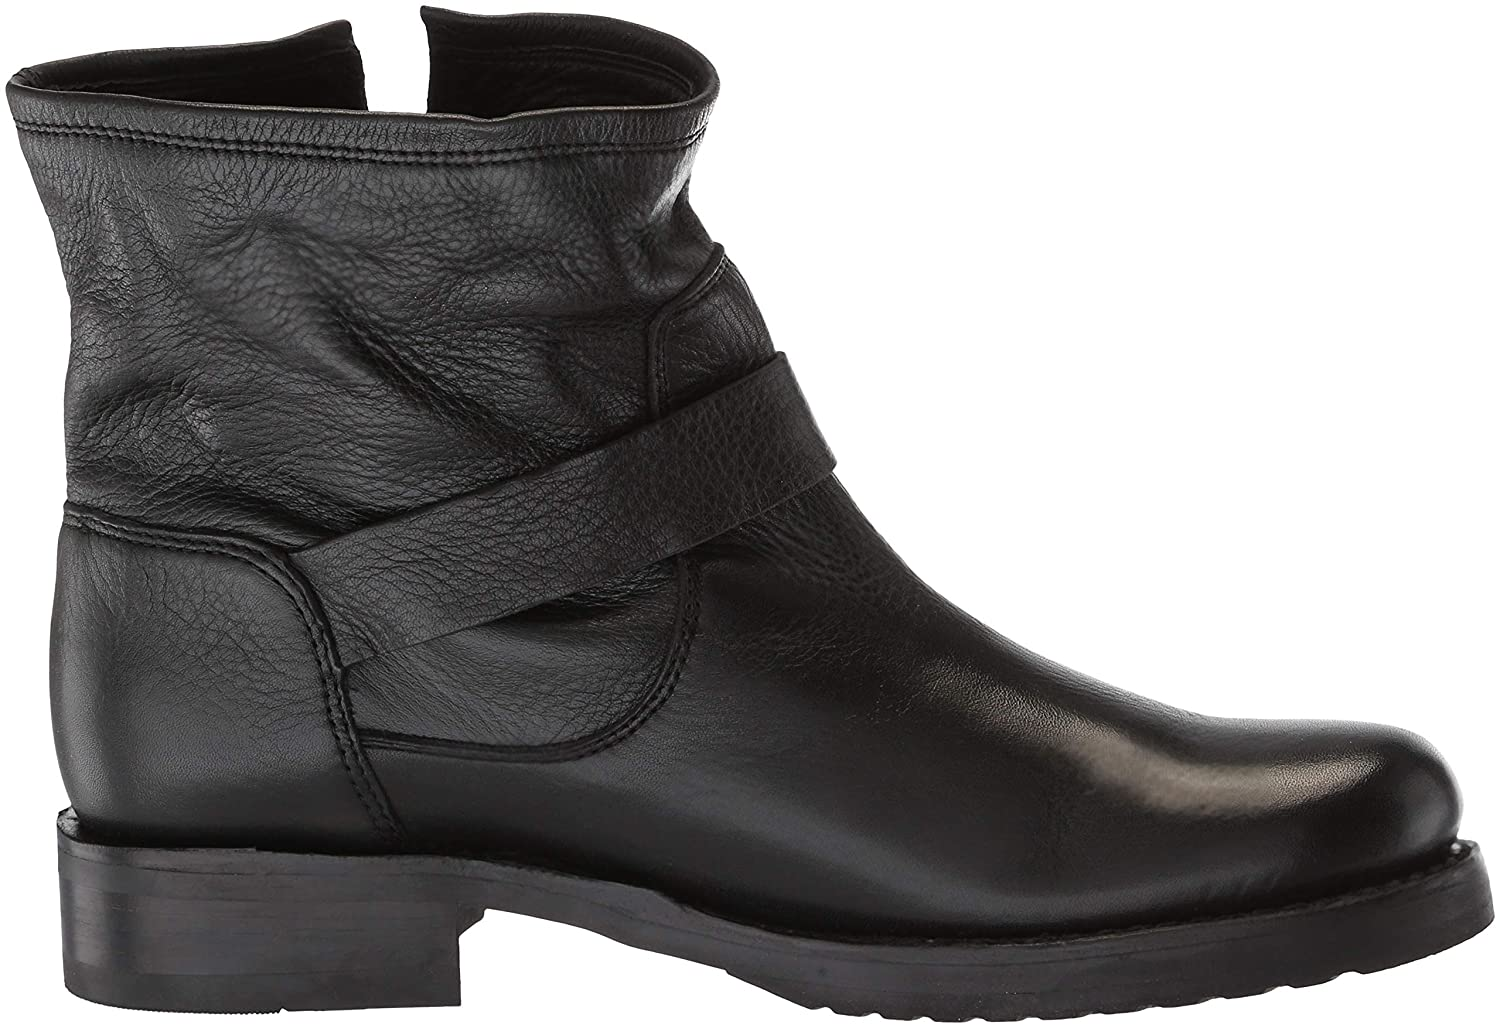 FRYE Womens Veronica Bootie Ankle Boot